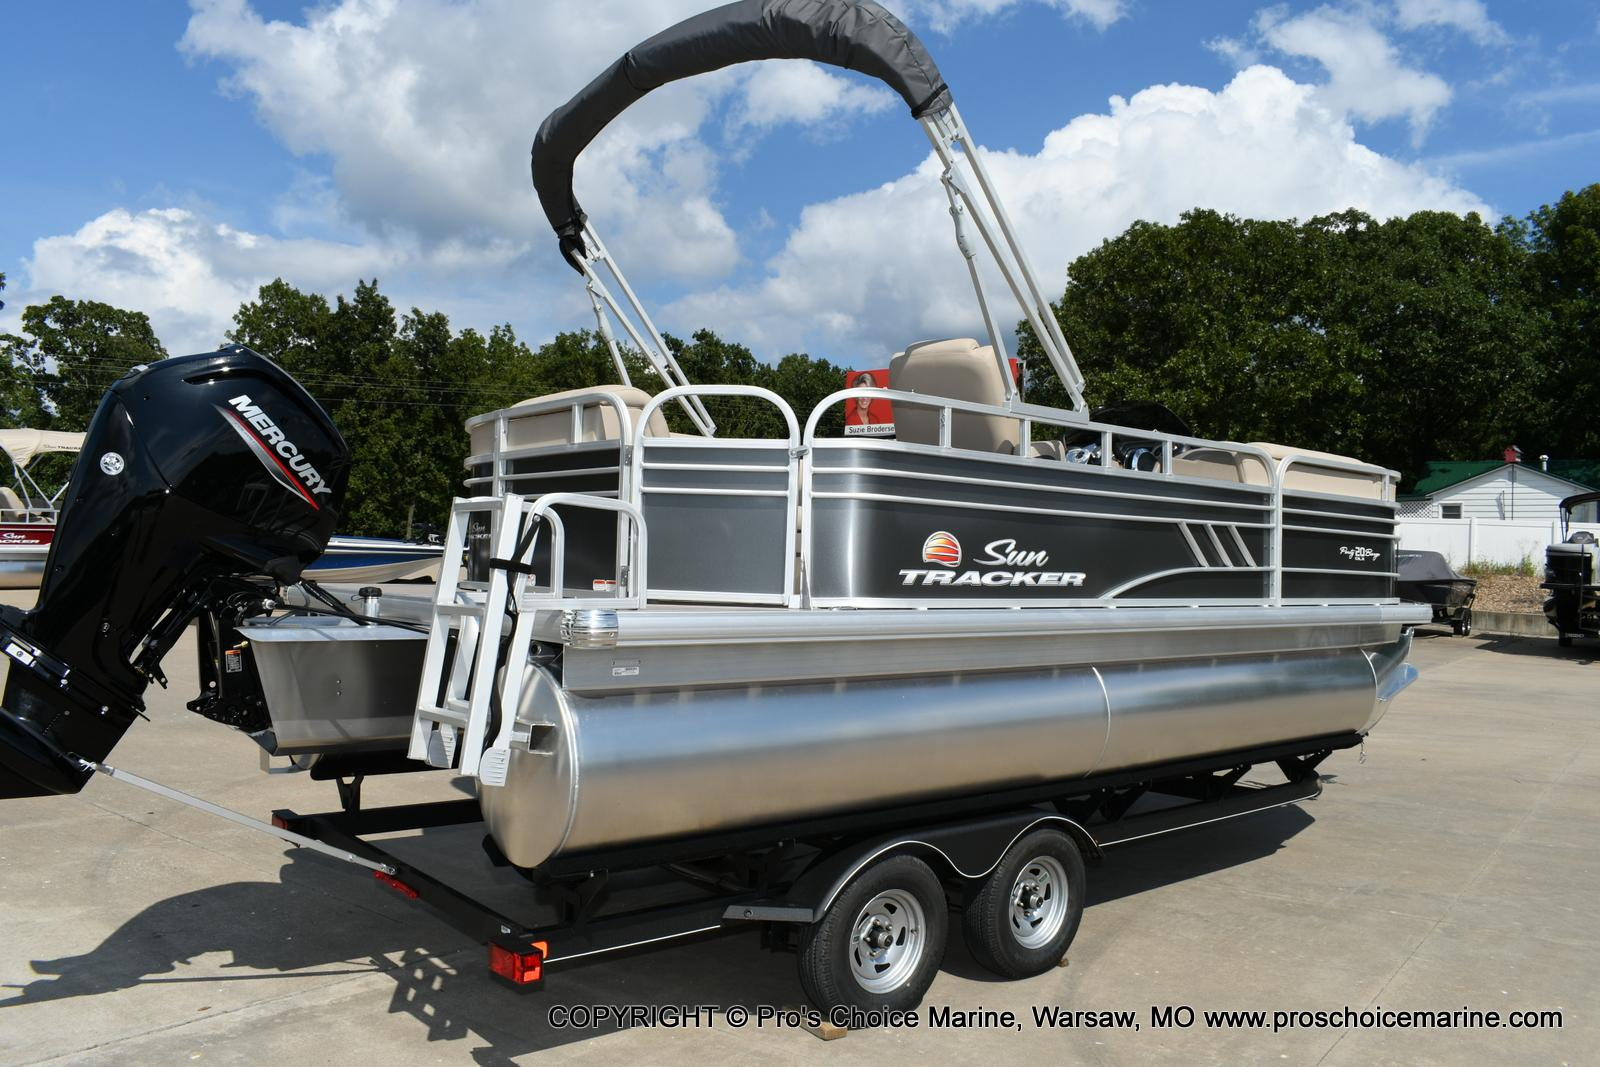 2020 Sun Tracker boat for sale, model of the boat is Party Barge 20 DLX & Image # 22 of 50